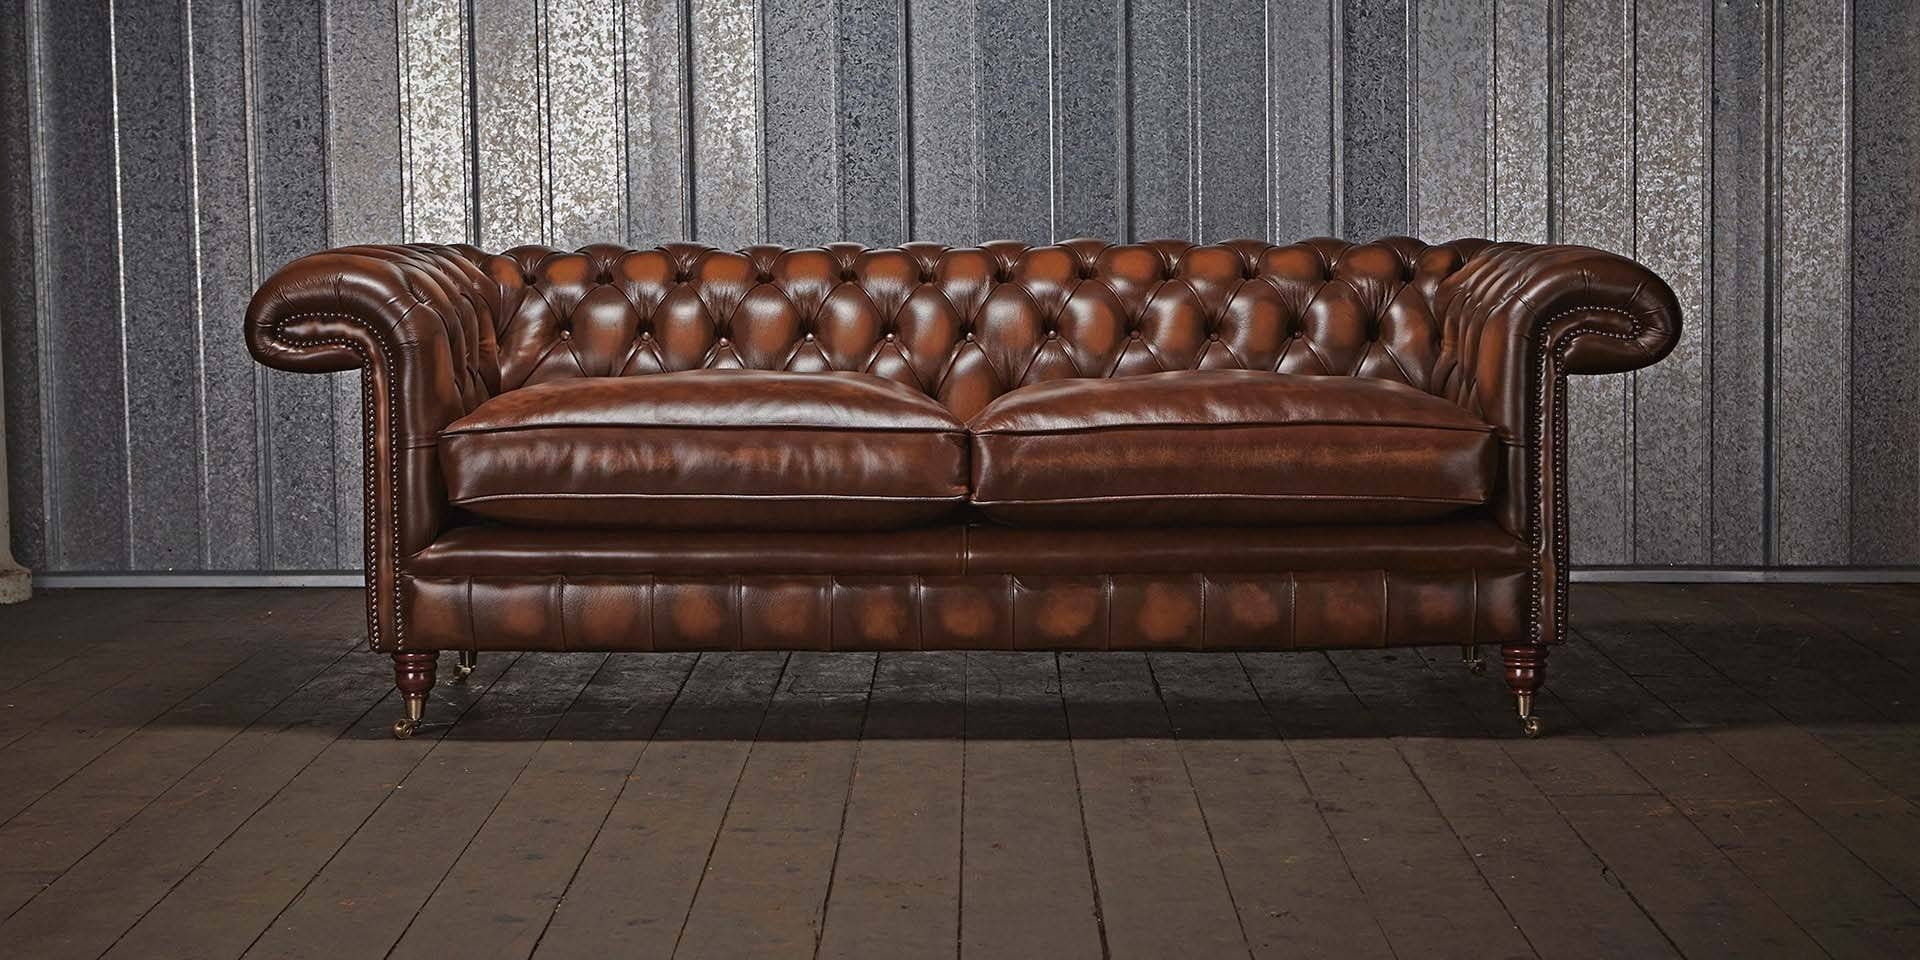 Chartwell Chesterfield Sofa | Chesterfields Of England with Chesterfield Furniture (Image 9 of 30)